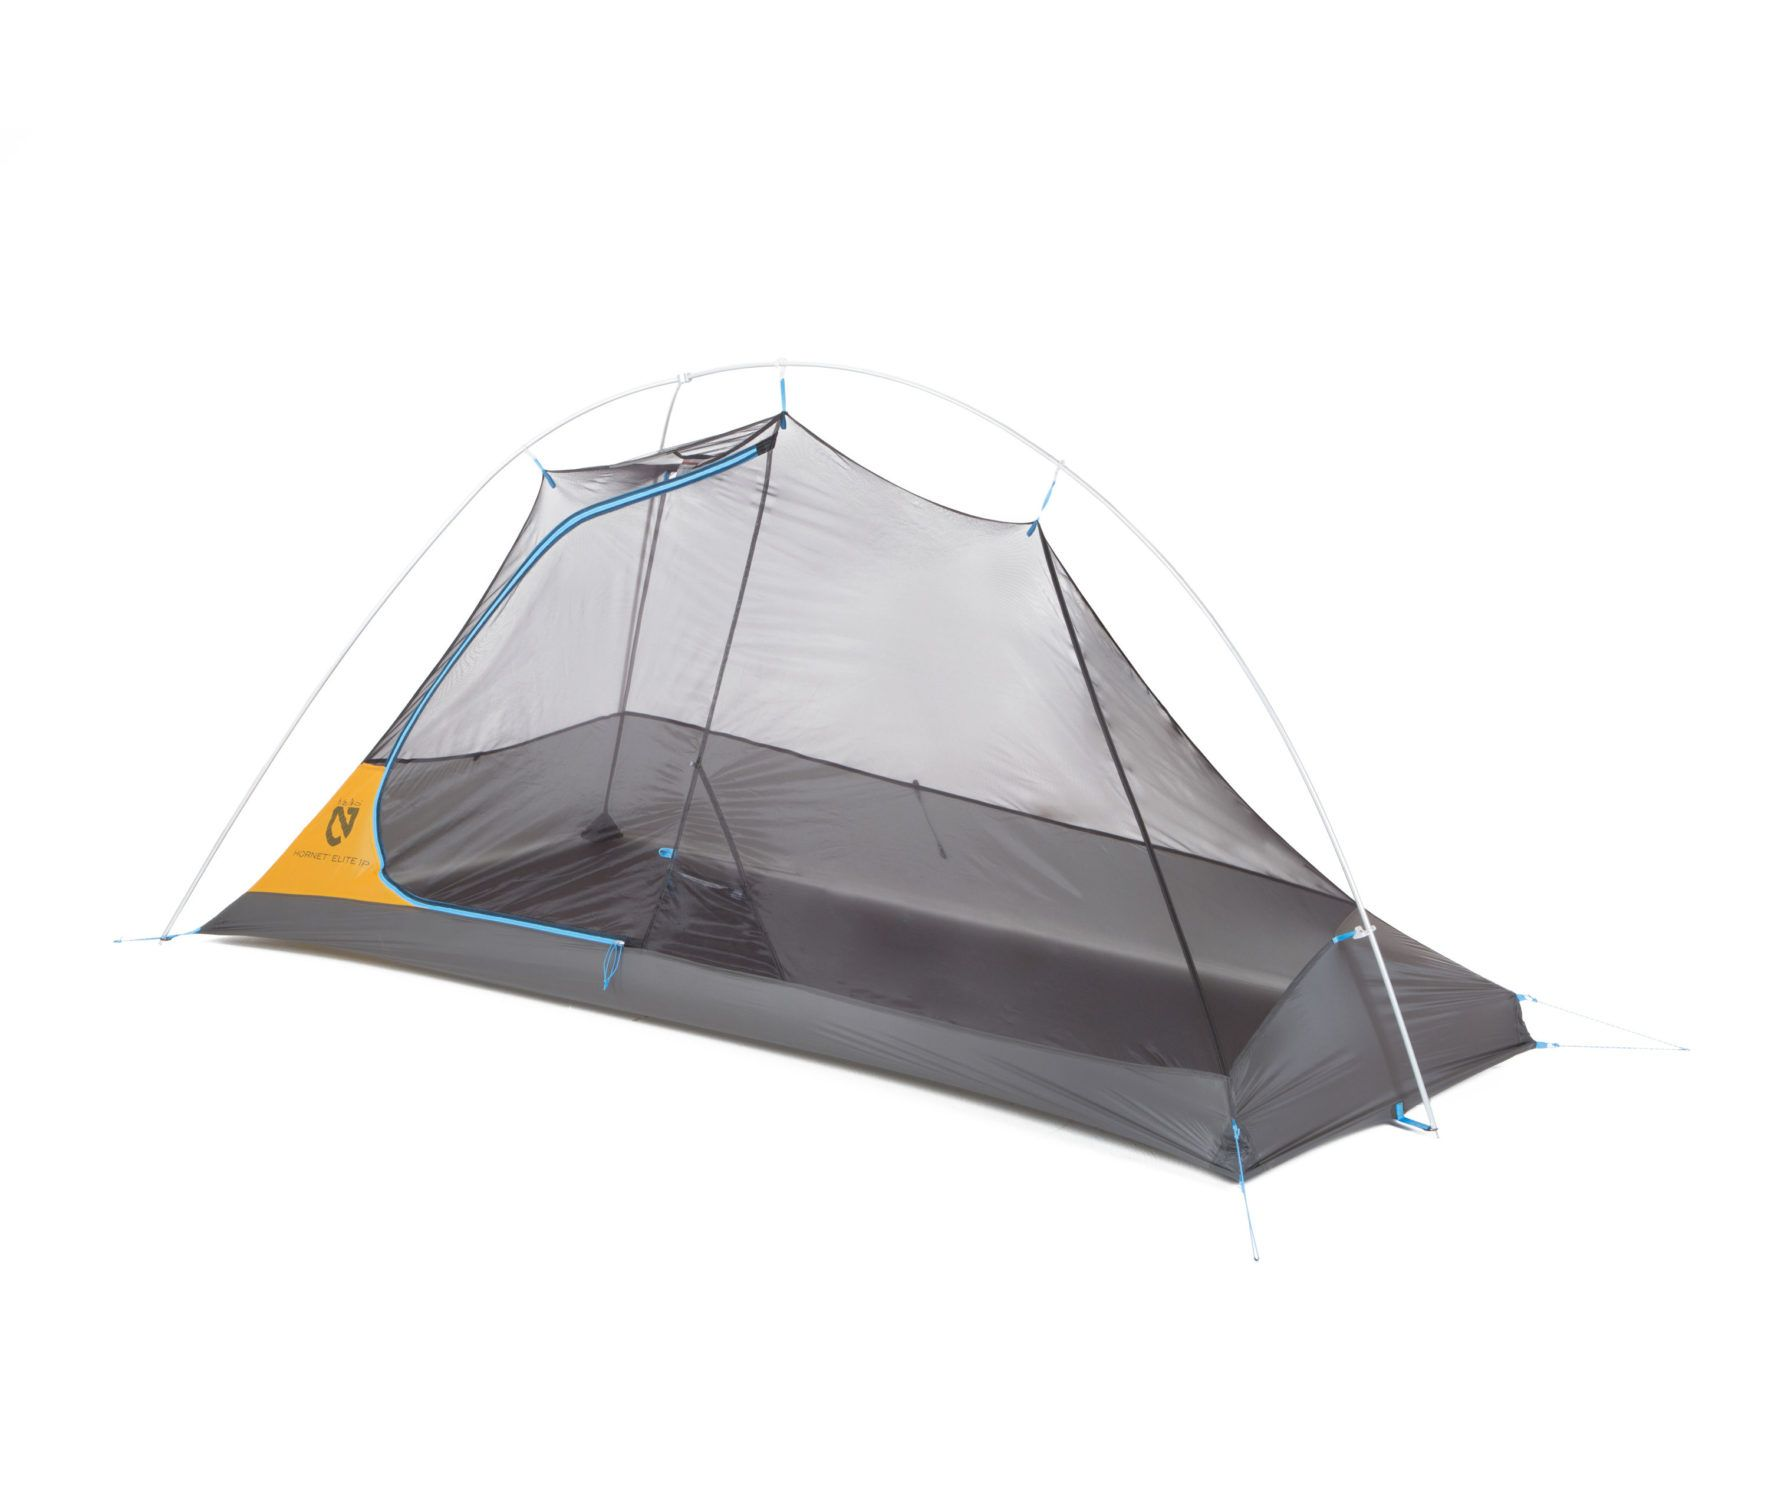 Freestanding Backpacking Tent & The MSR Freelite 2 Tent ...